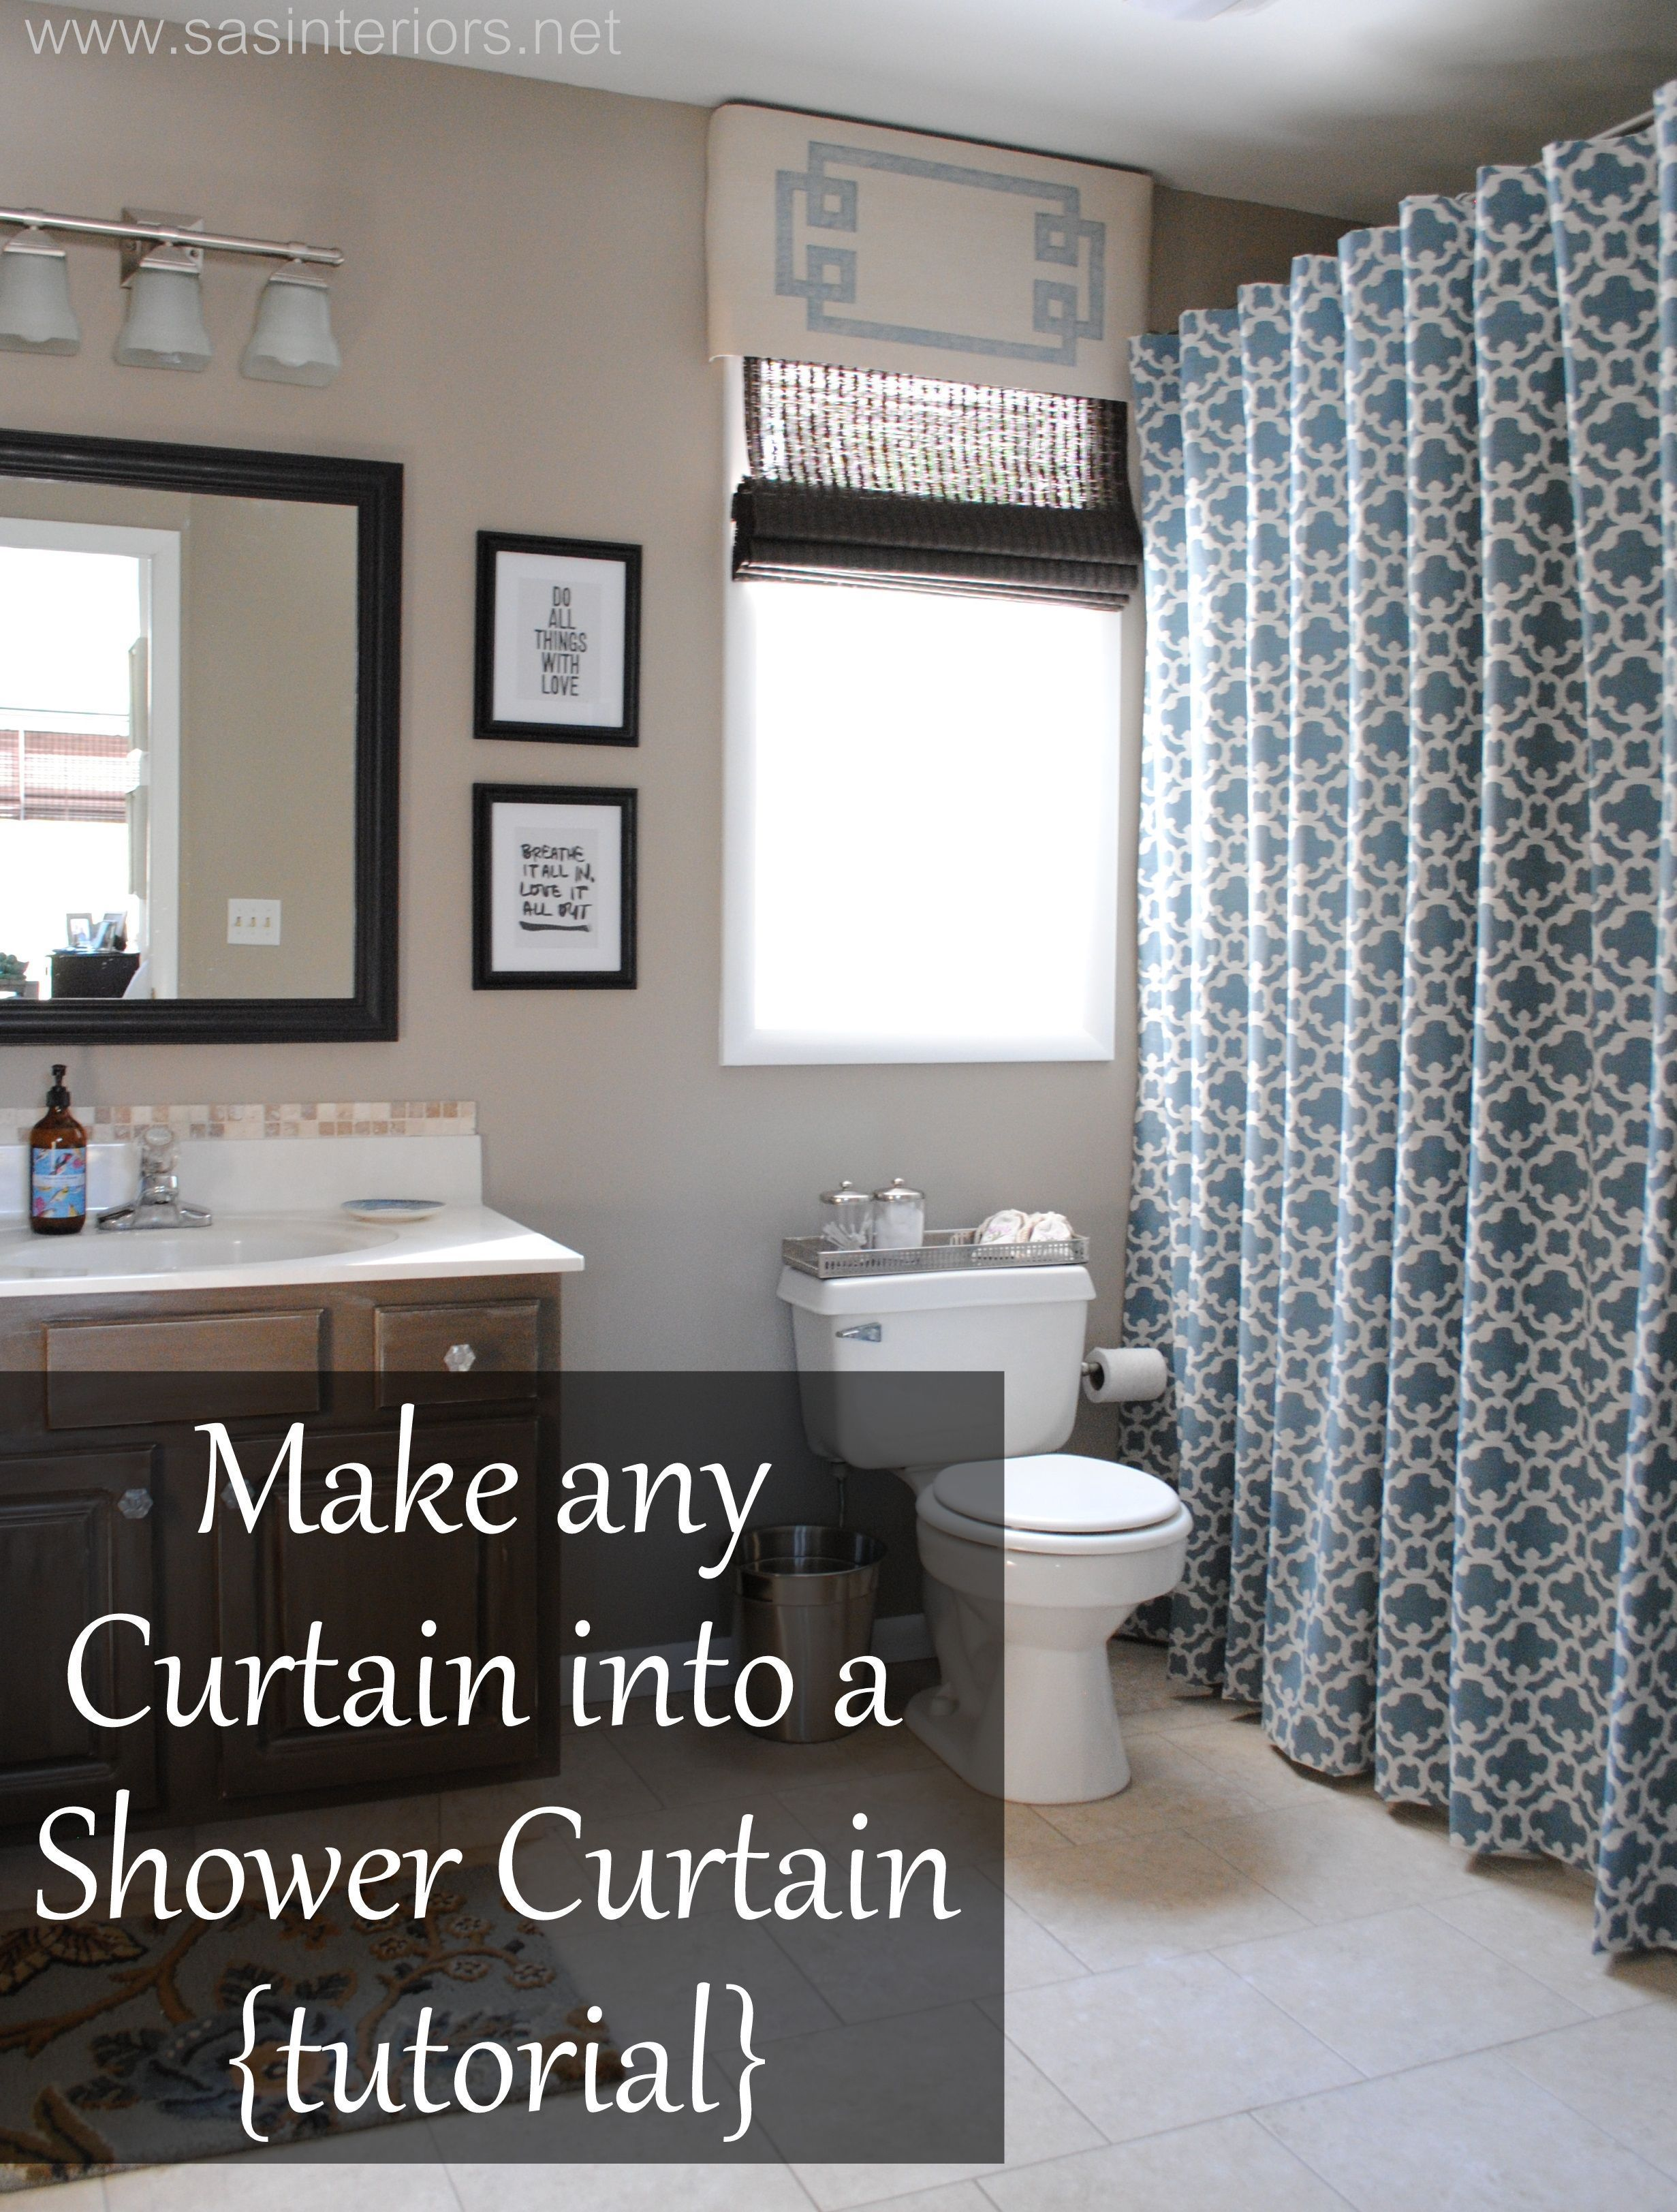 :: Make ANY Curtain into a Shower Curtain Tutorial :: This is a NO SEW project. You just need some drapes that match your bathroom, a shower curtain liner that's the length of the curtains [she found an extra long one at BB] & some ball-style shower hooks. |CURTAINS :: Make ANY Curtain into a Shower Curtain Tutorial :: This is a NO SEW p...